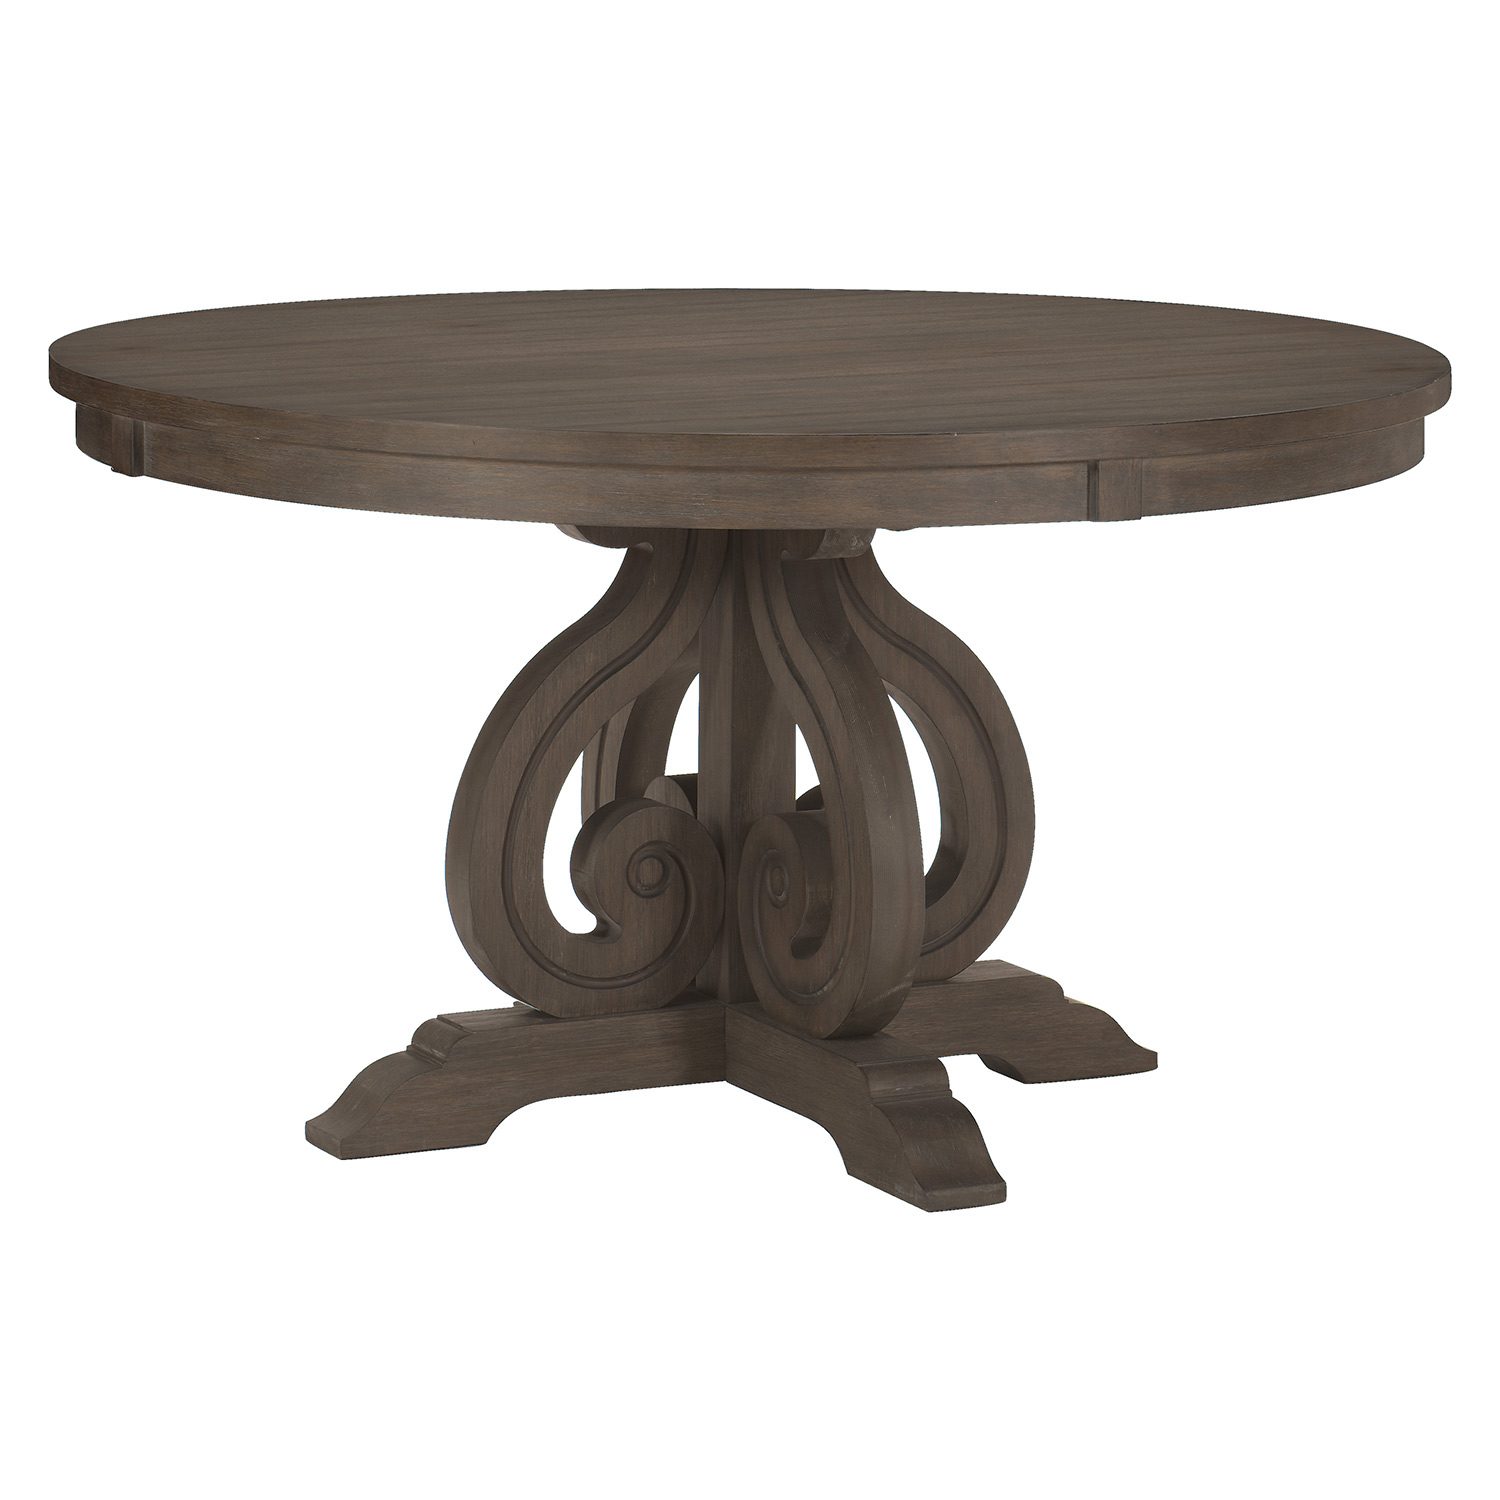 Homelegance Toulon Round DiningTable - Wire-brushed Dark Pewter